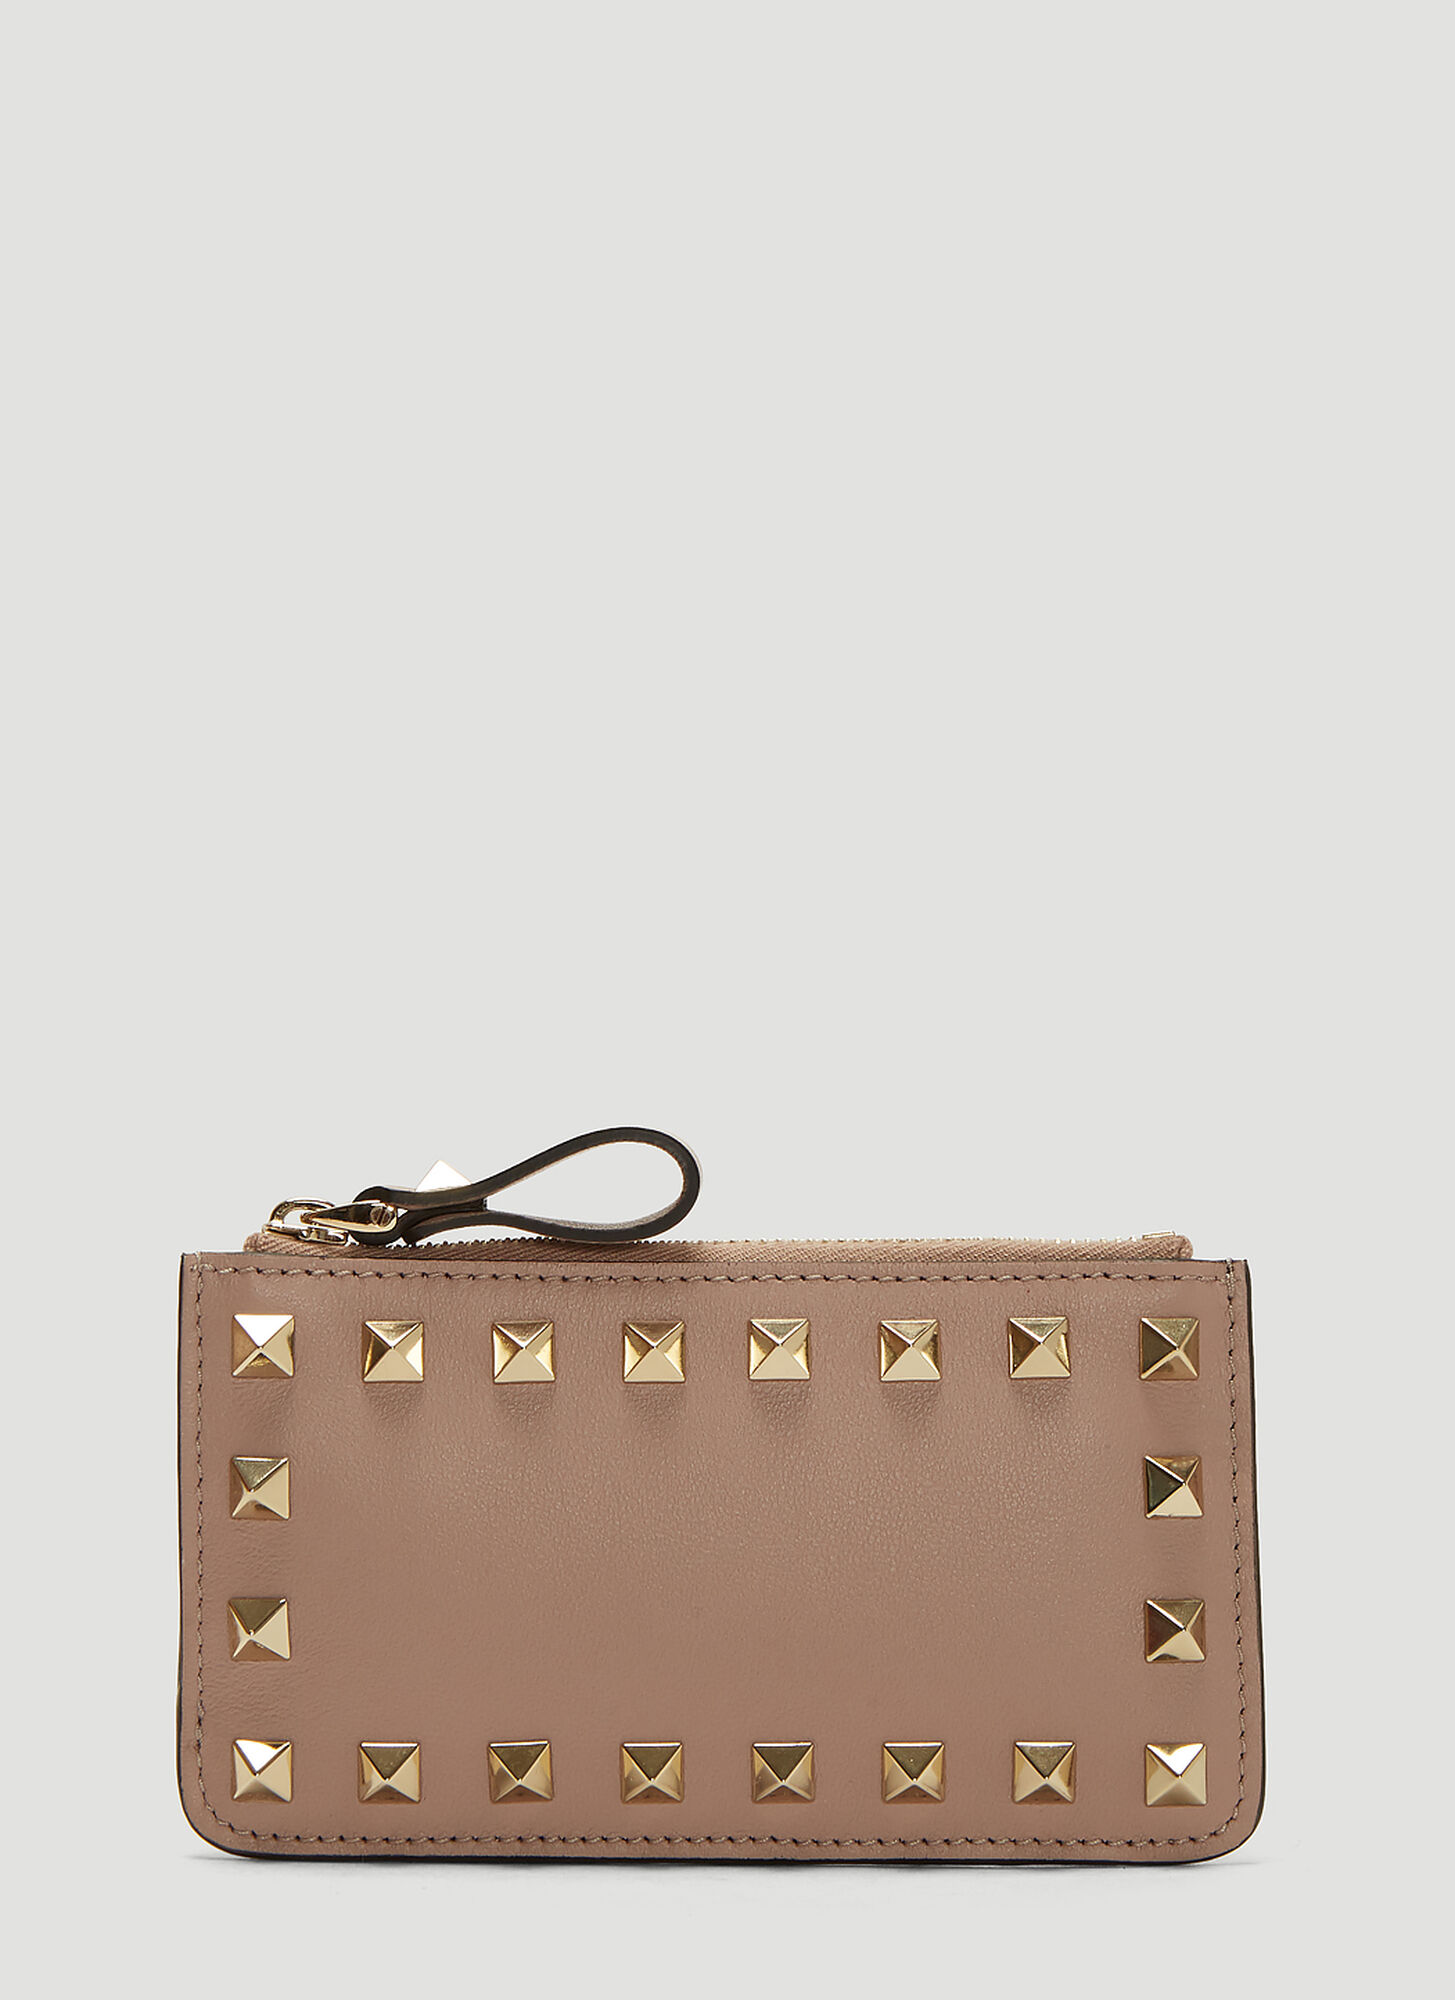 Valentino Rockstud Coin Purse in Pink